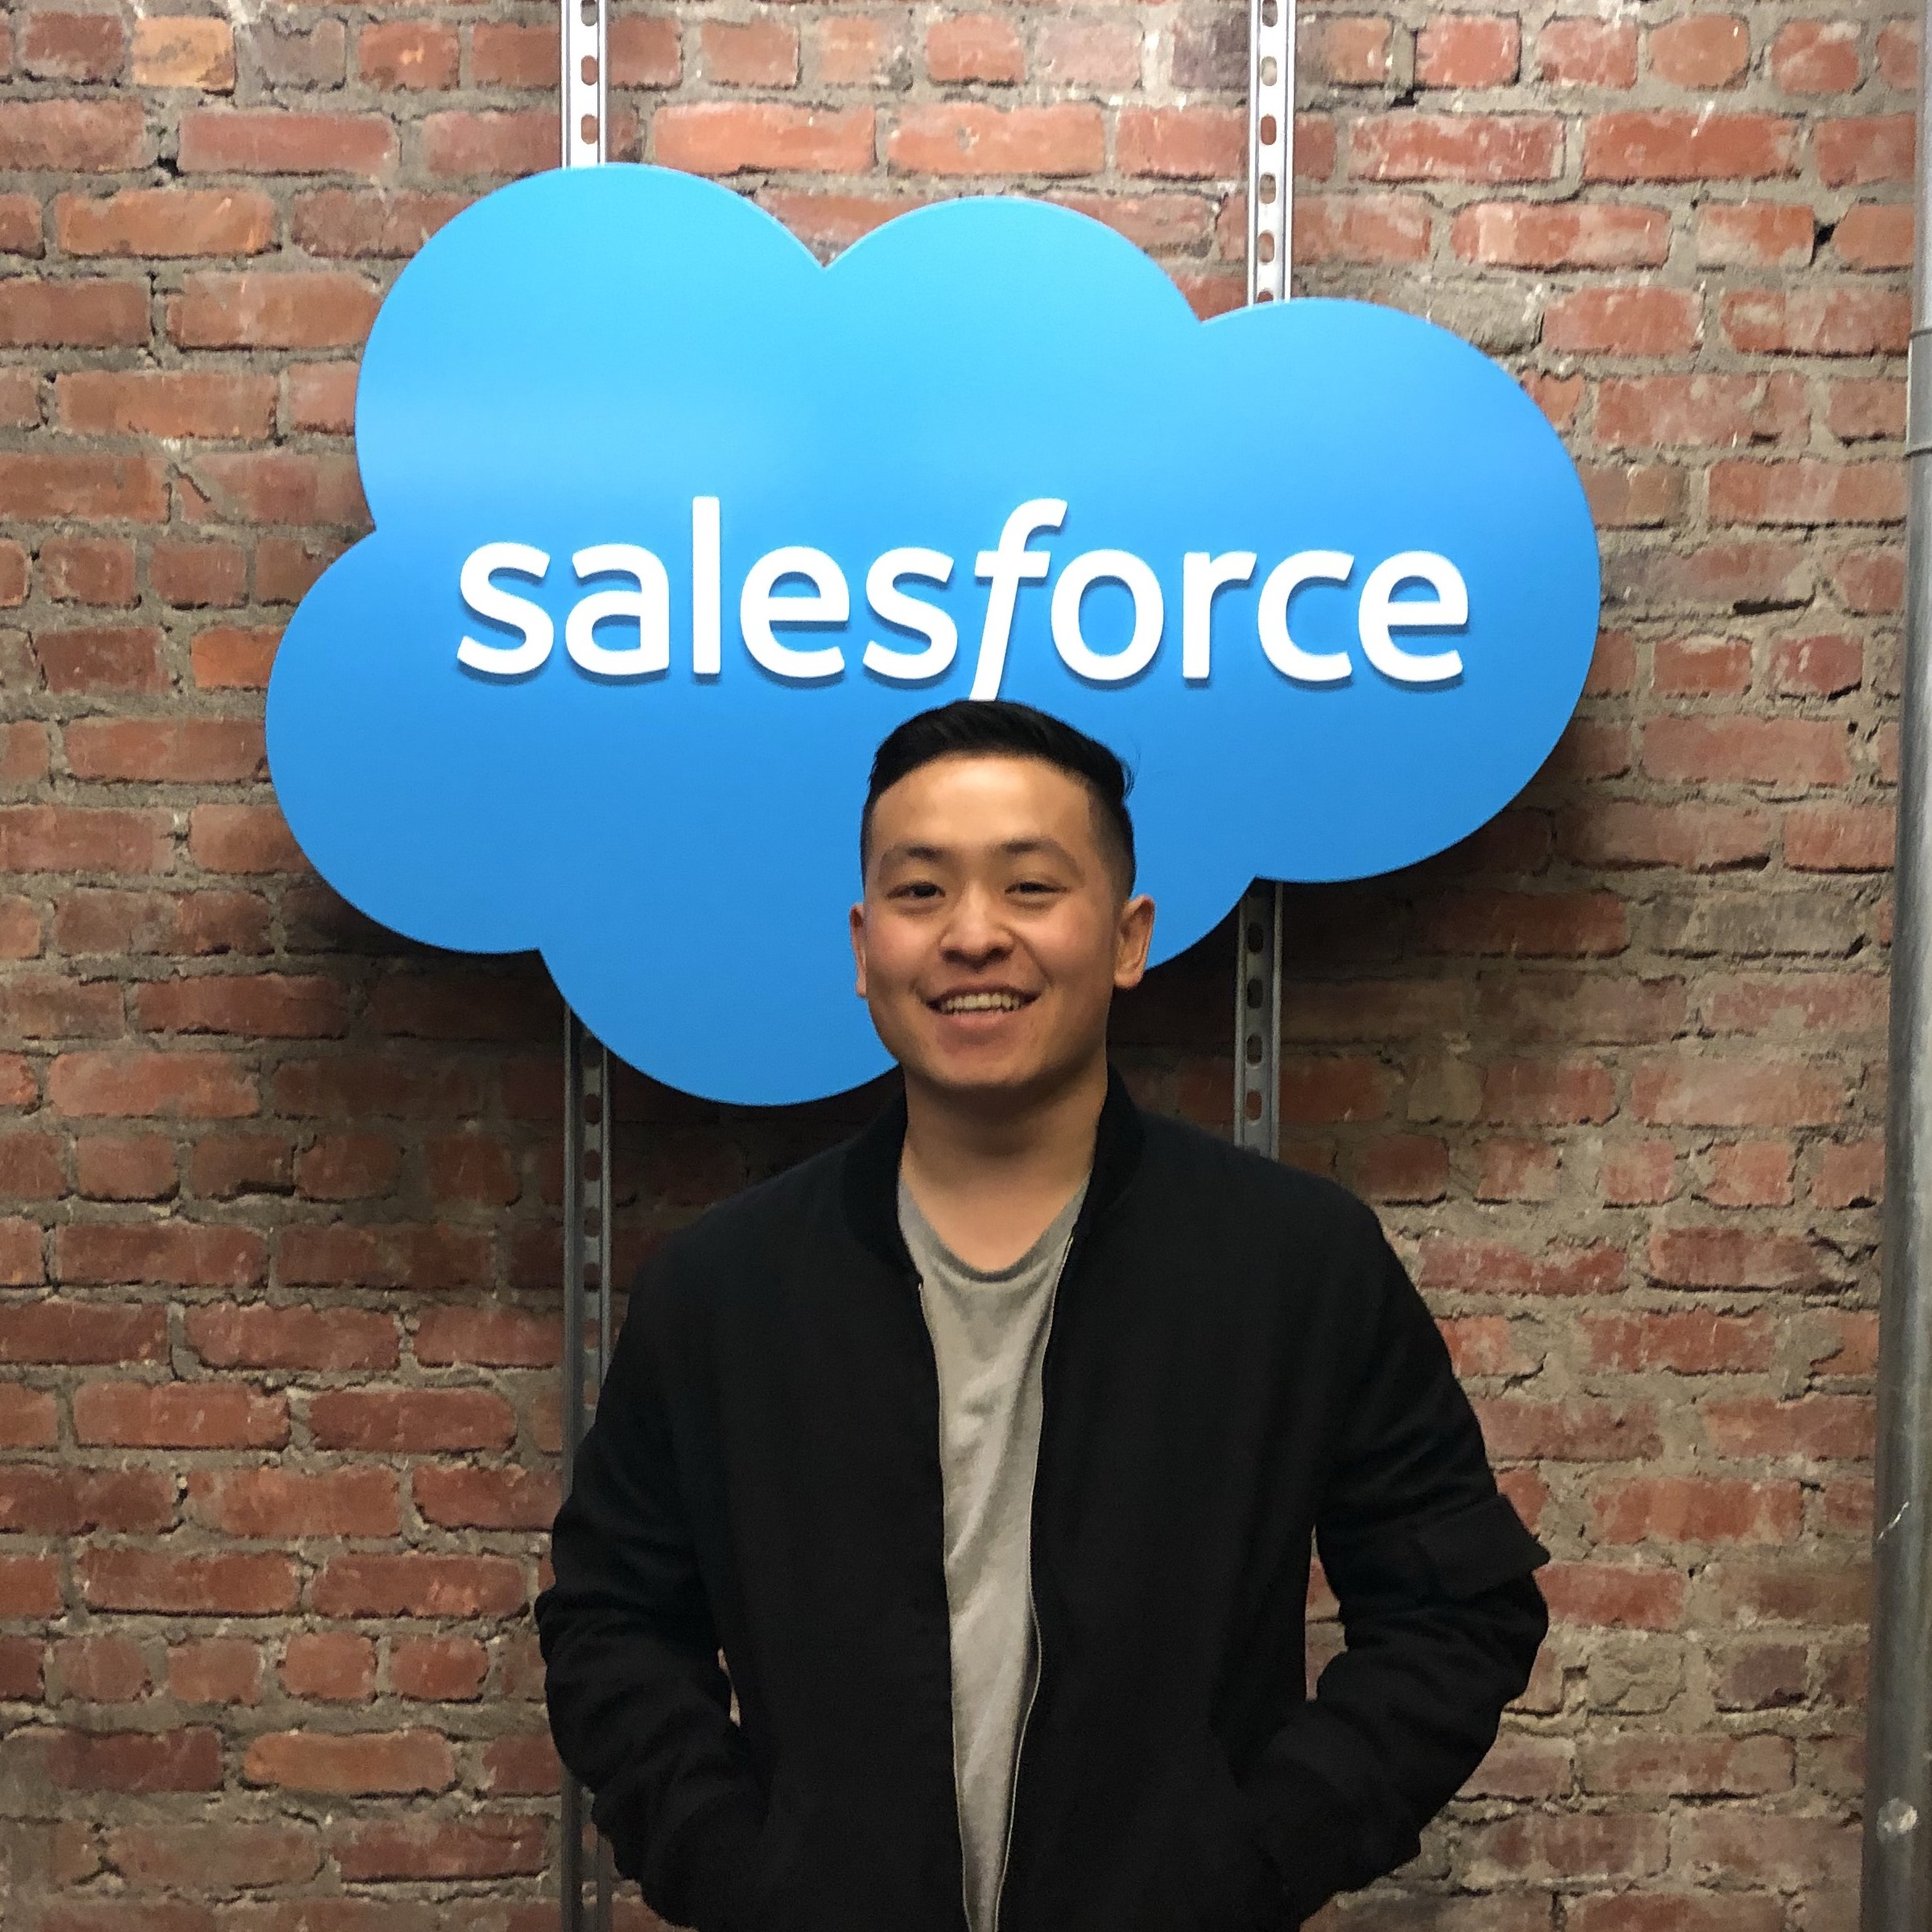 UCSD Ed Ngai Salesforce